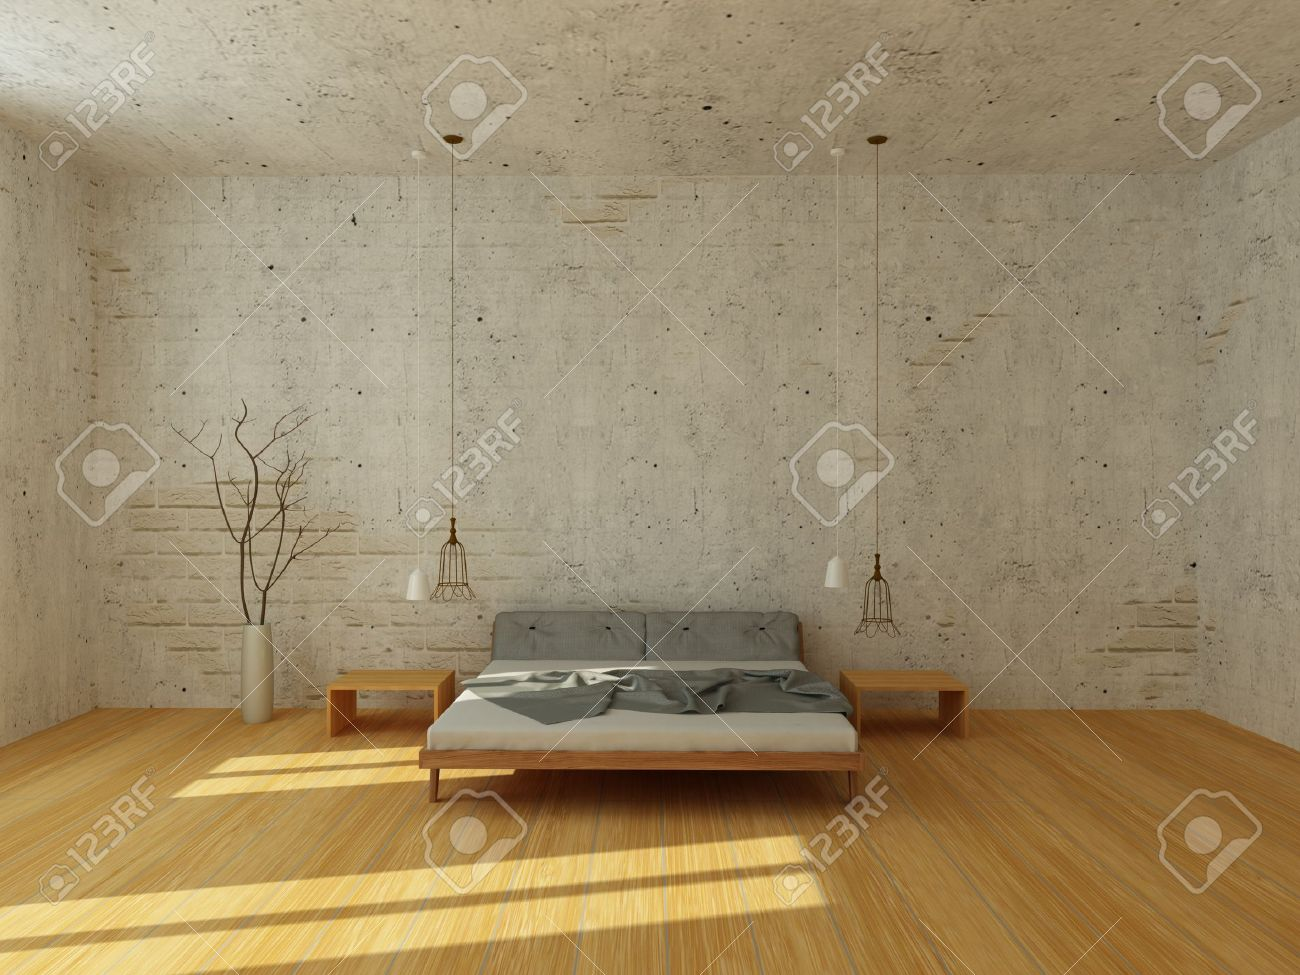 Light Bedroom With White Brick Wall And Stucco, With Wooden Floor, Modern  Chandelier,